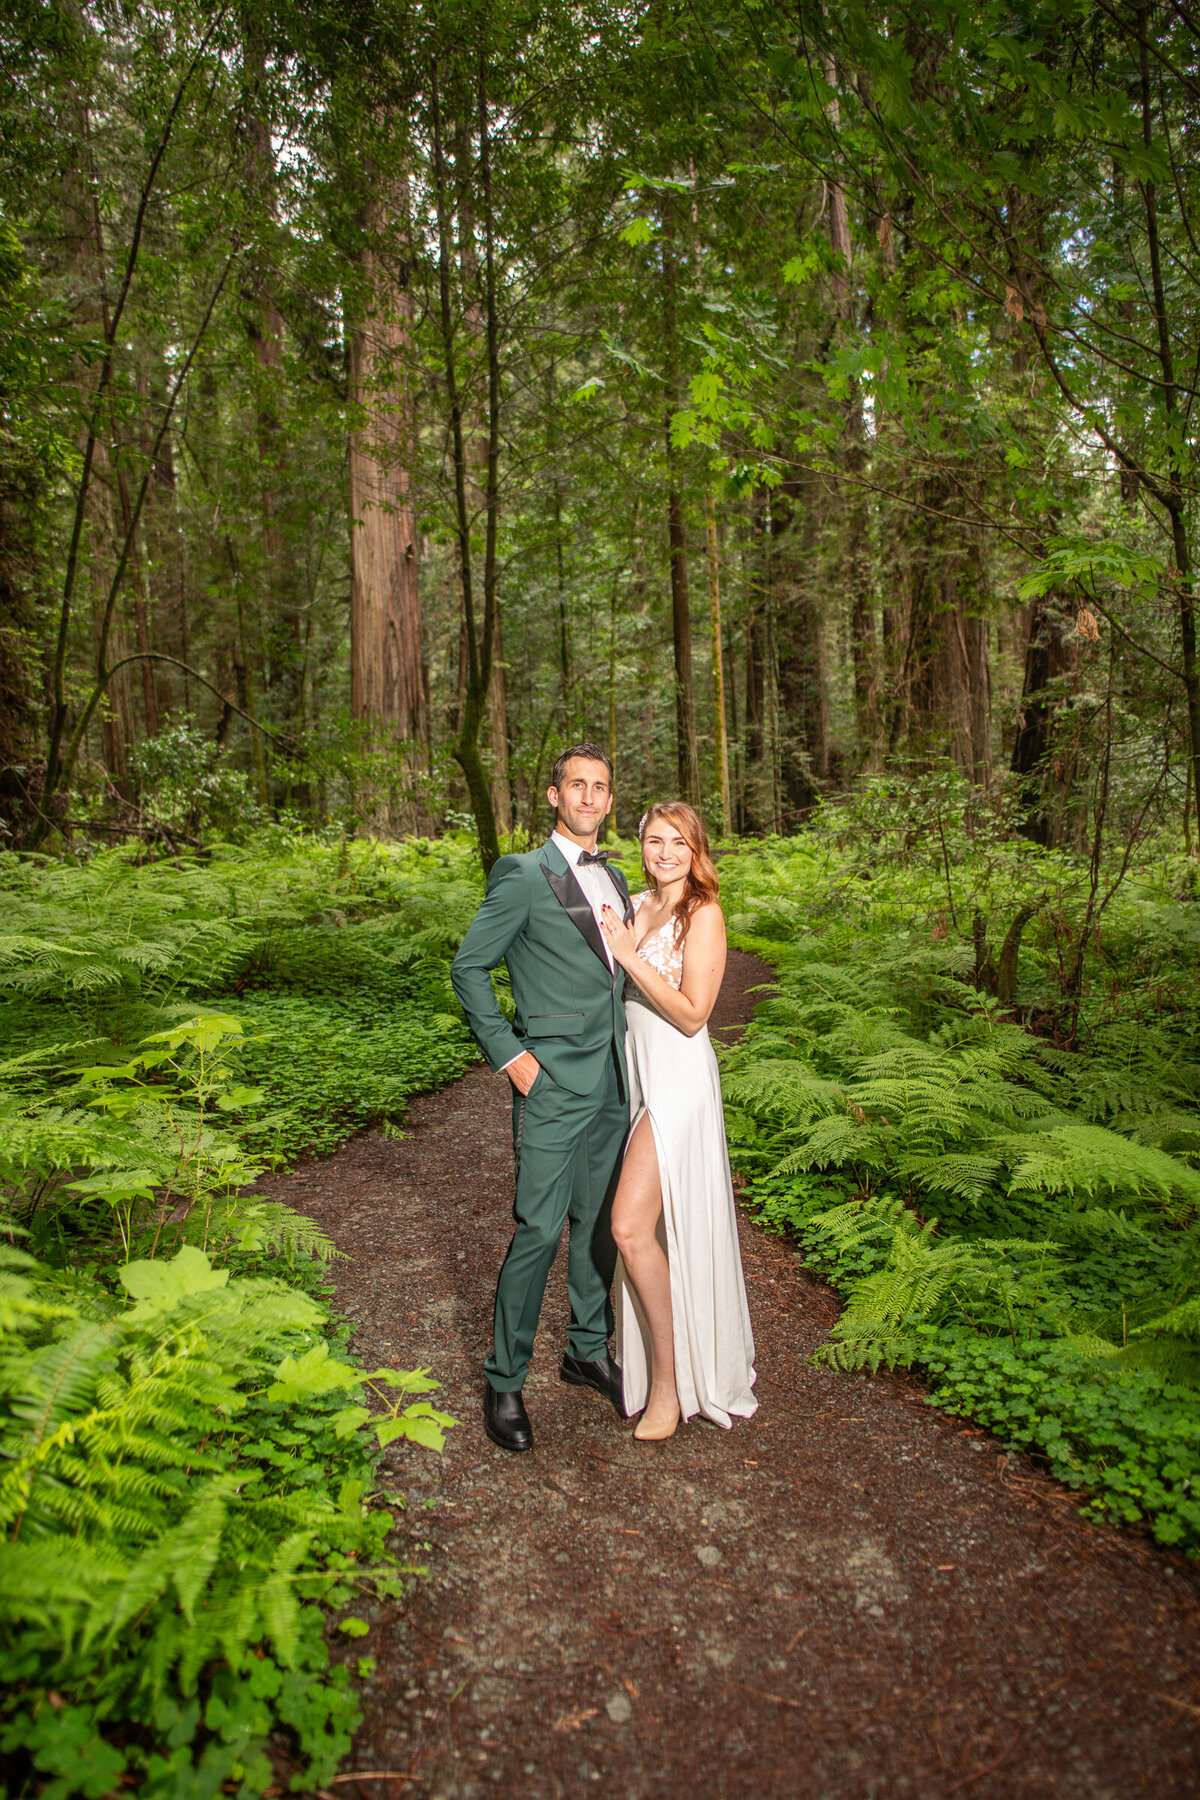 Avenue-of-the-Giants-Redwood-Forest-Elopement-Humboldt-County-Elopement-Photographer-Parky's Pics-9